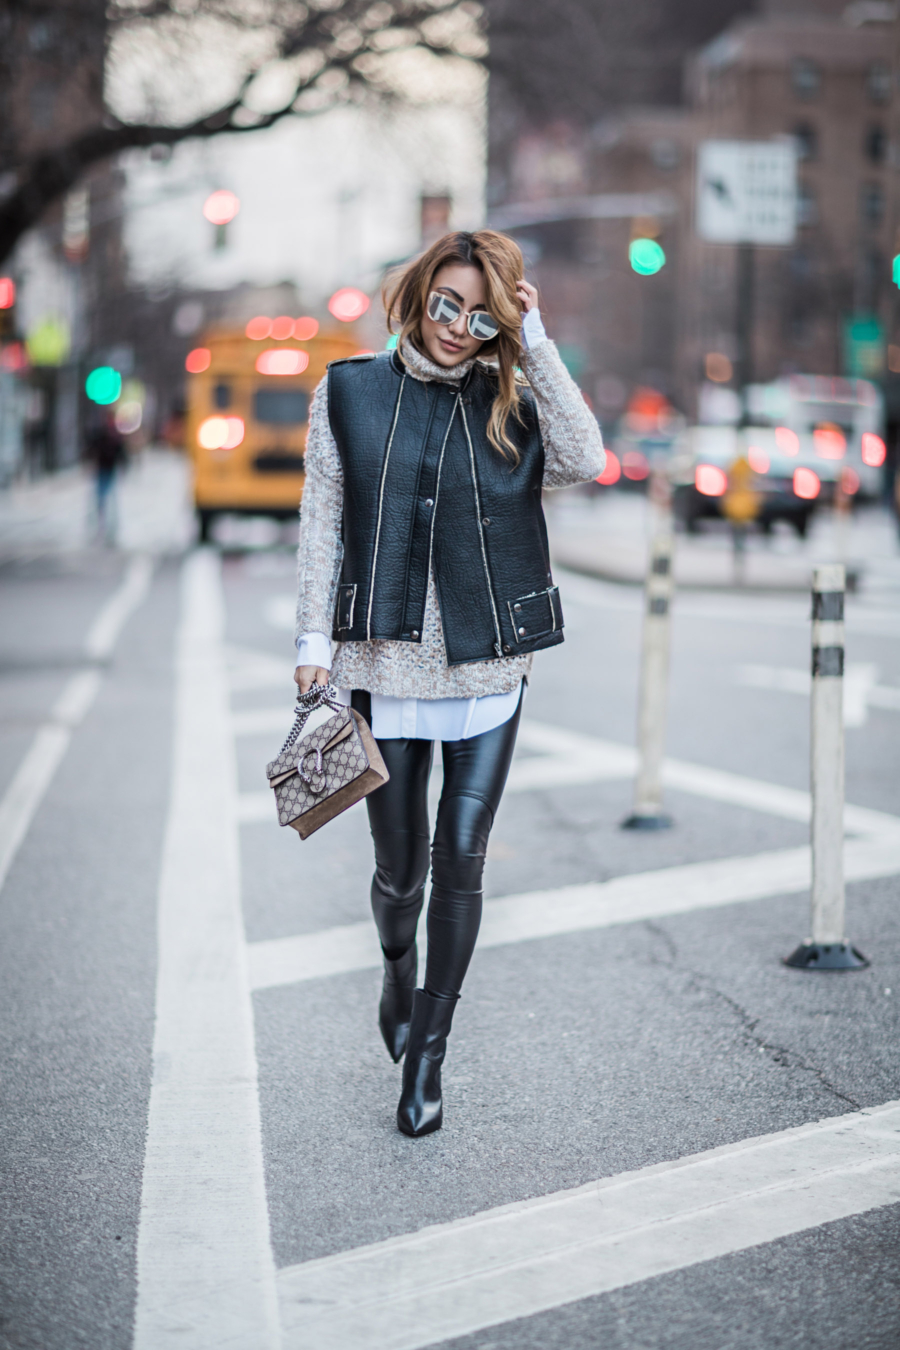 winter wardrobe essentials - faux leather pants // NotJessFashion.com